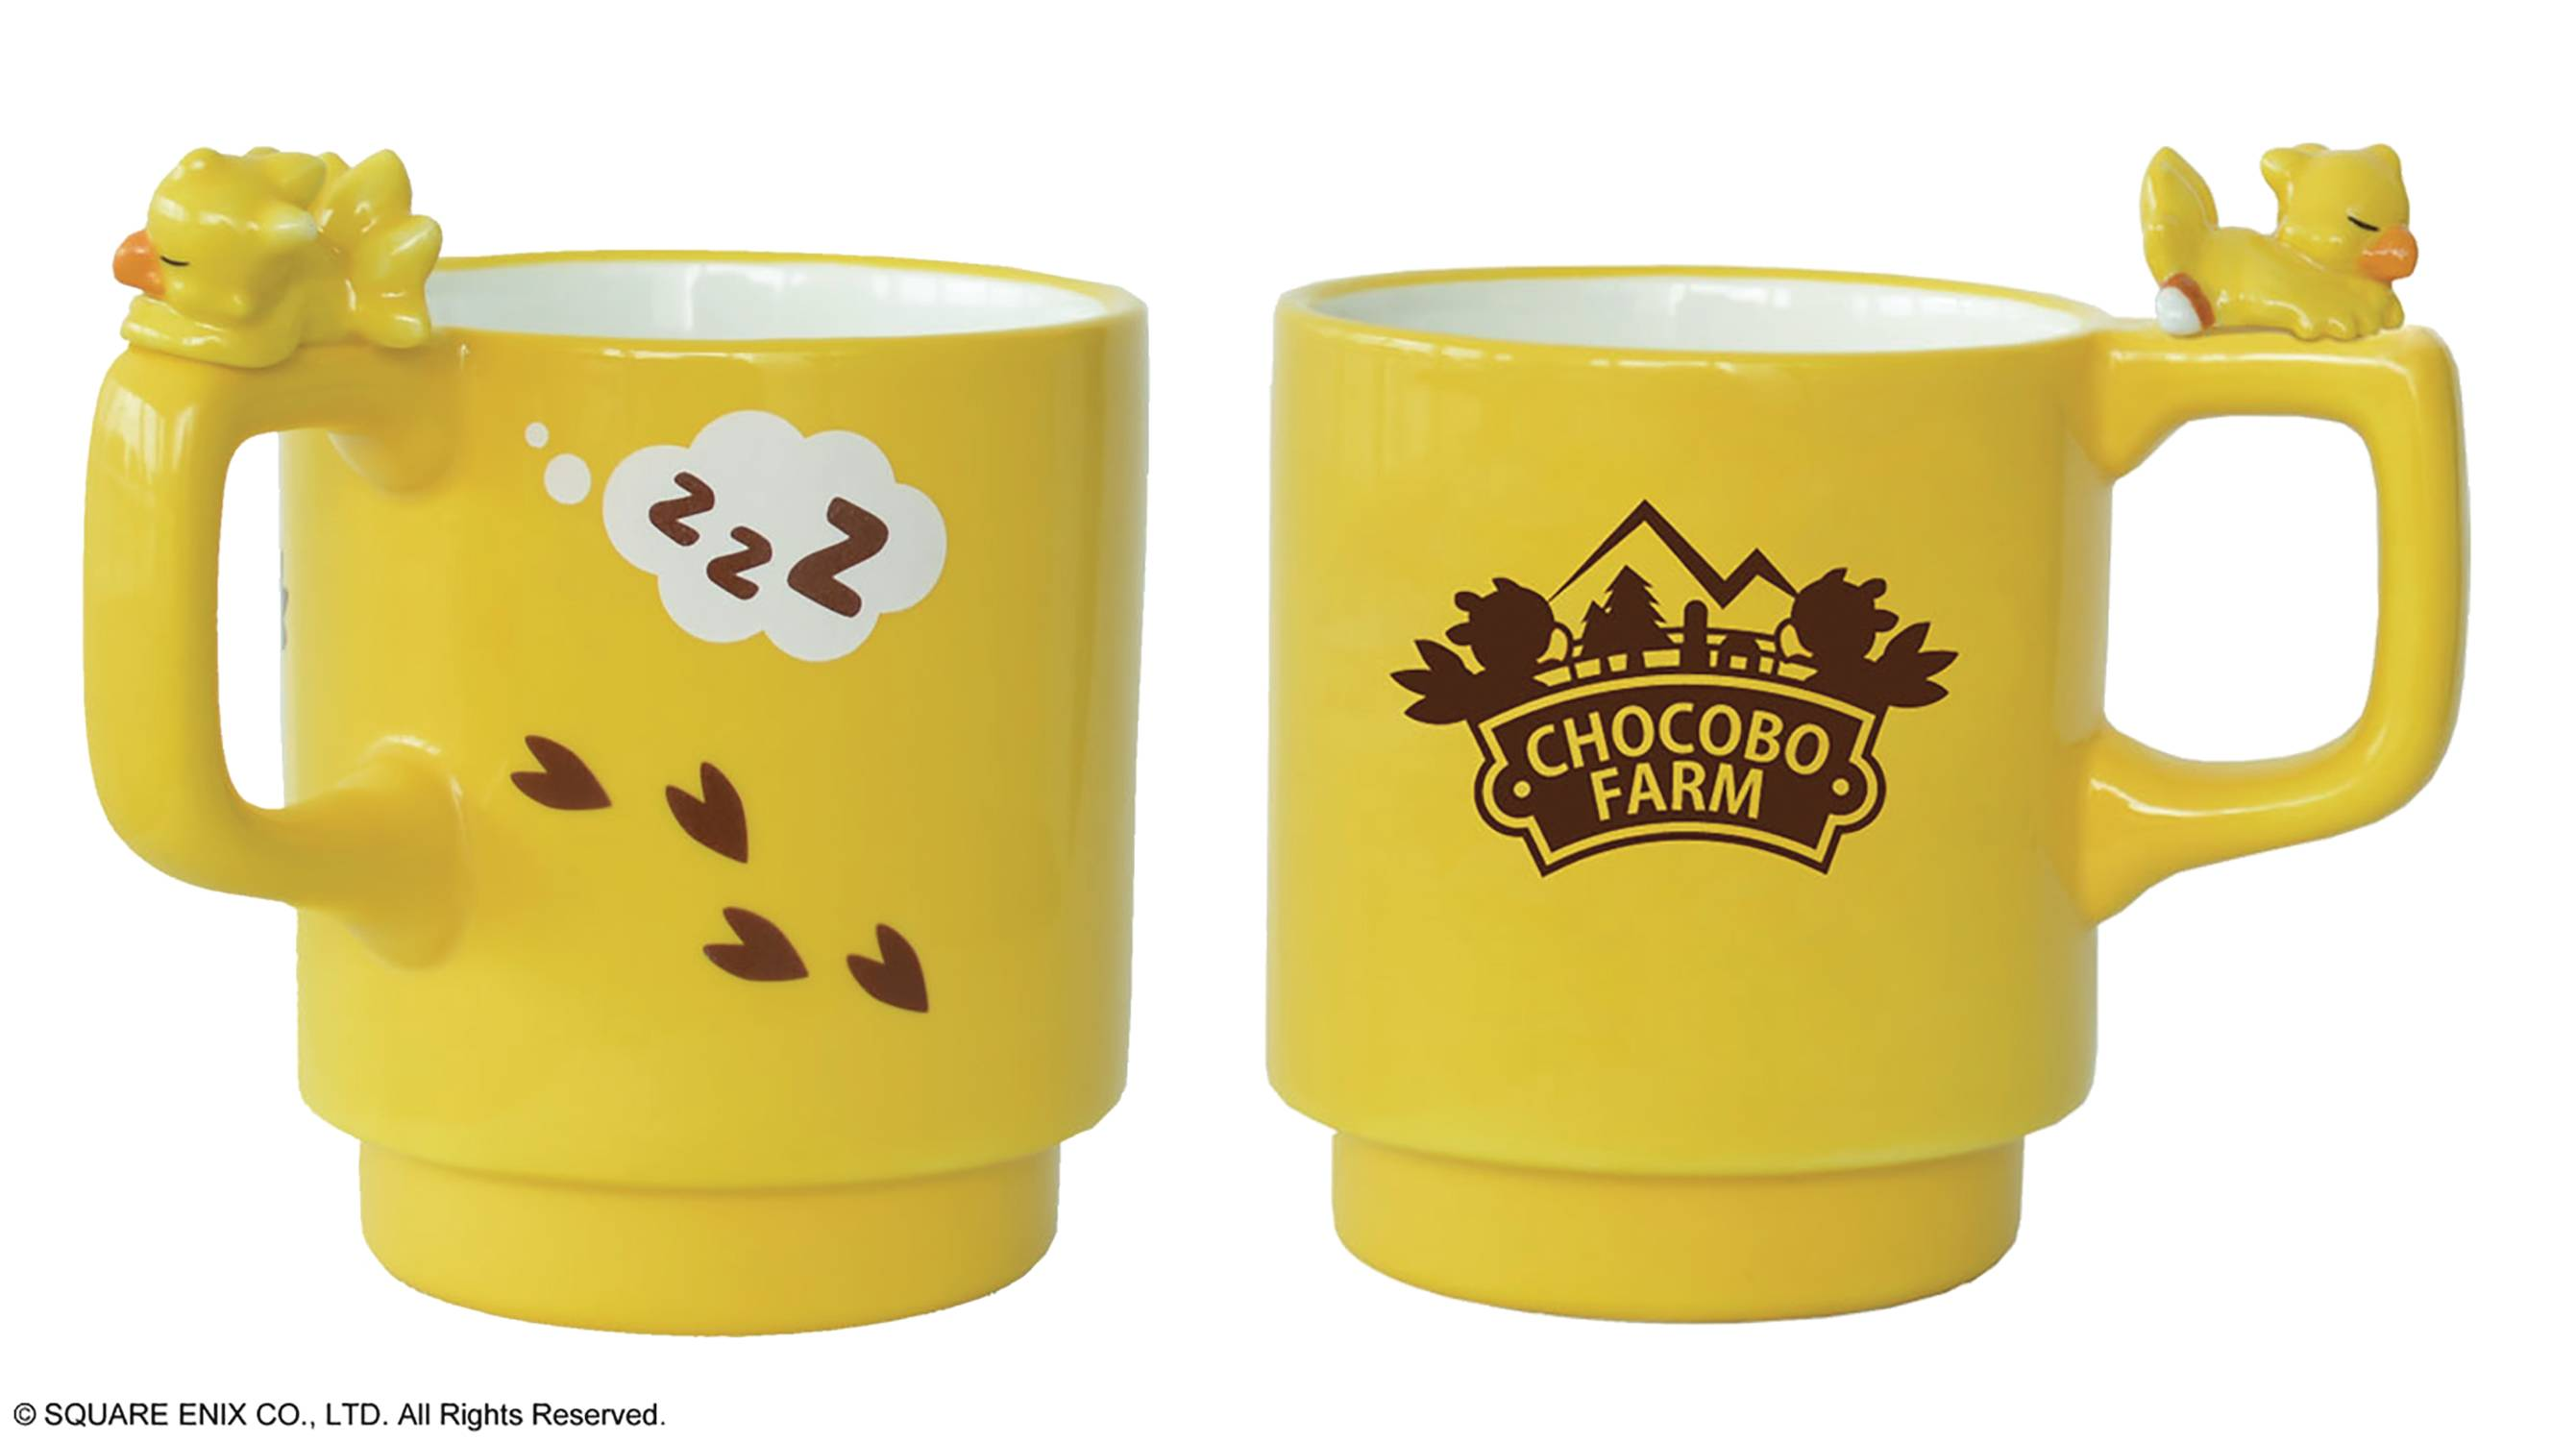 FINAL FANTASY CHOCOBO CHARACTER FIGURE MUG